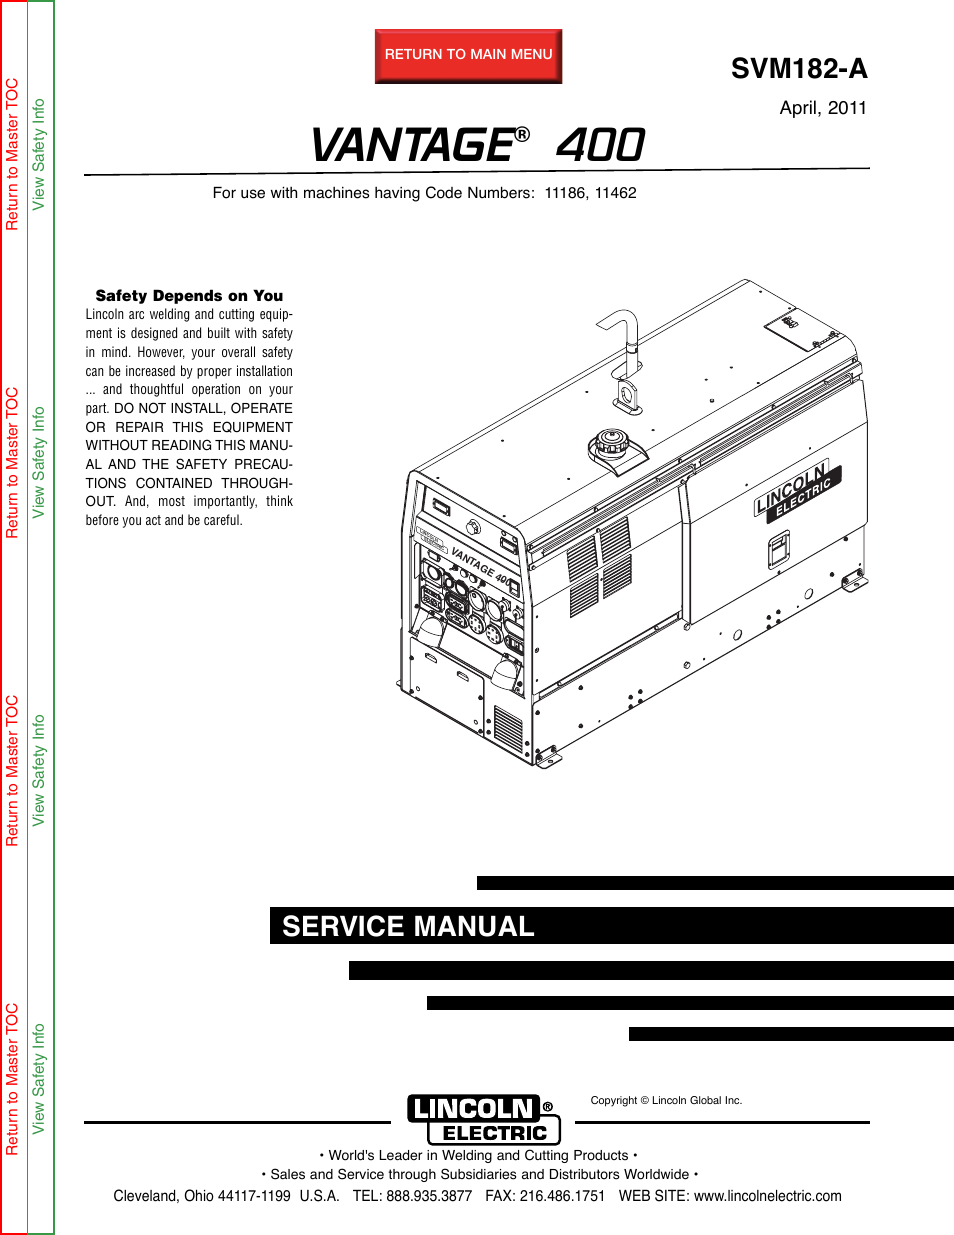 lincoln electric vantage 400 page1 lincoln electric vantage 400 user manual 166 pages